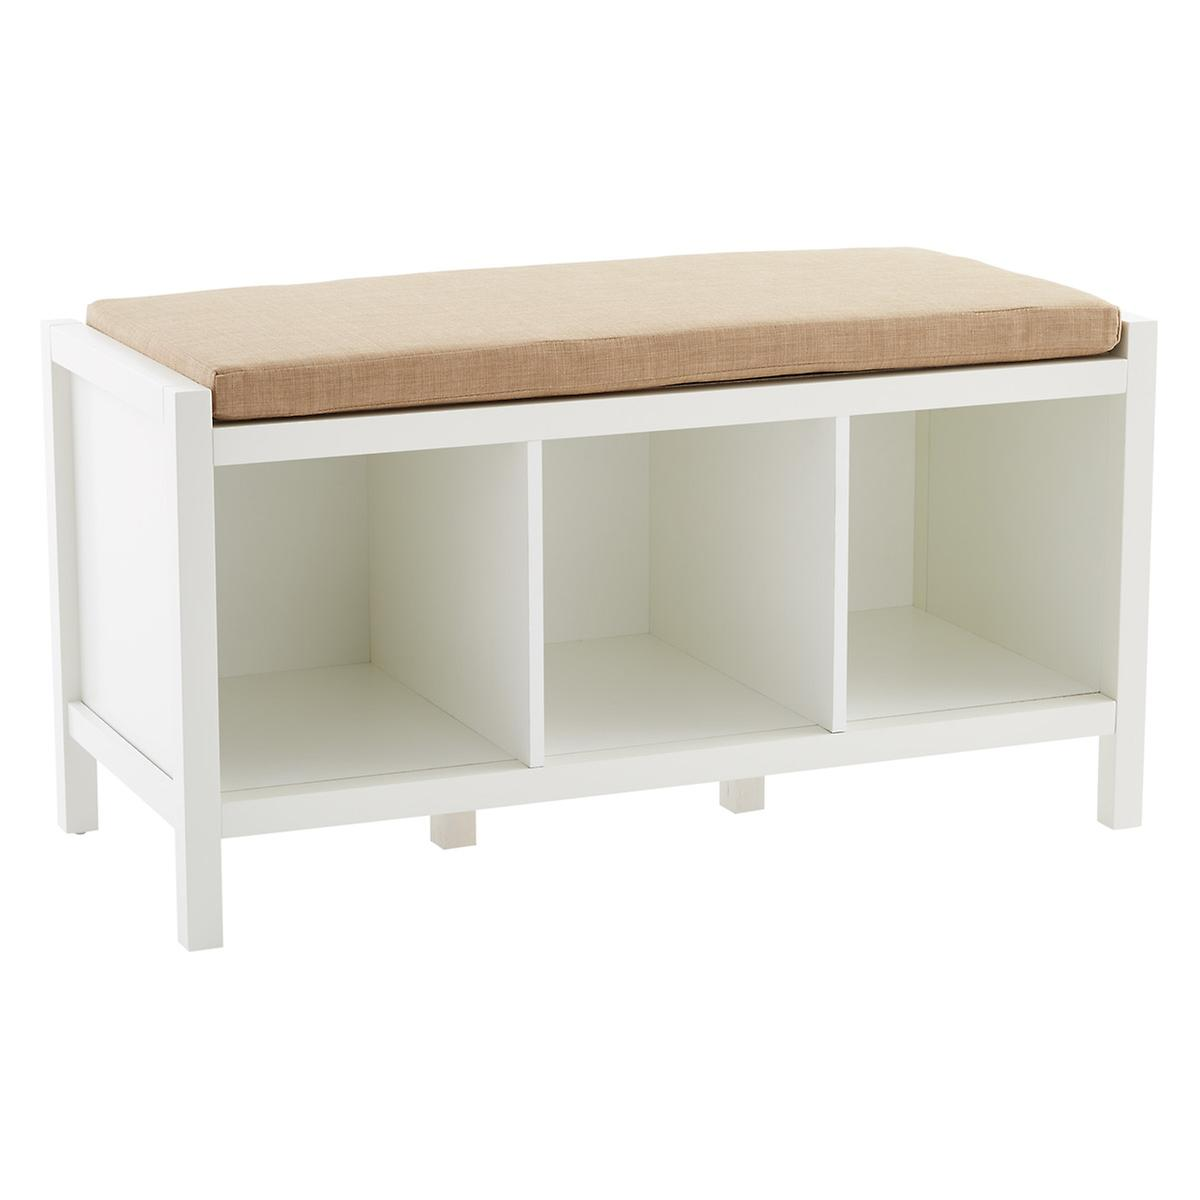 Division Storage Bench